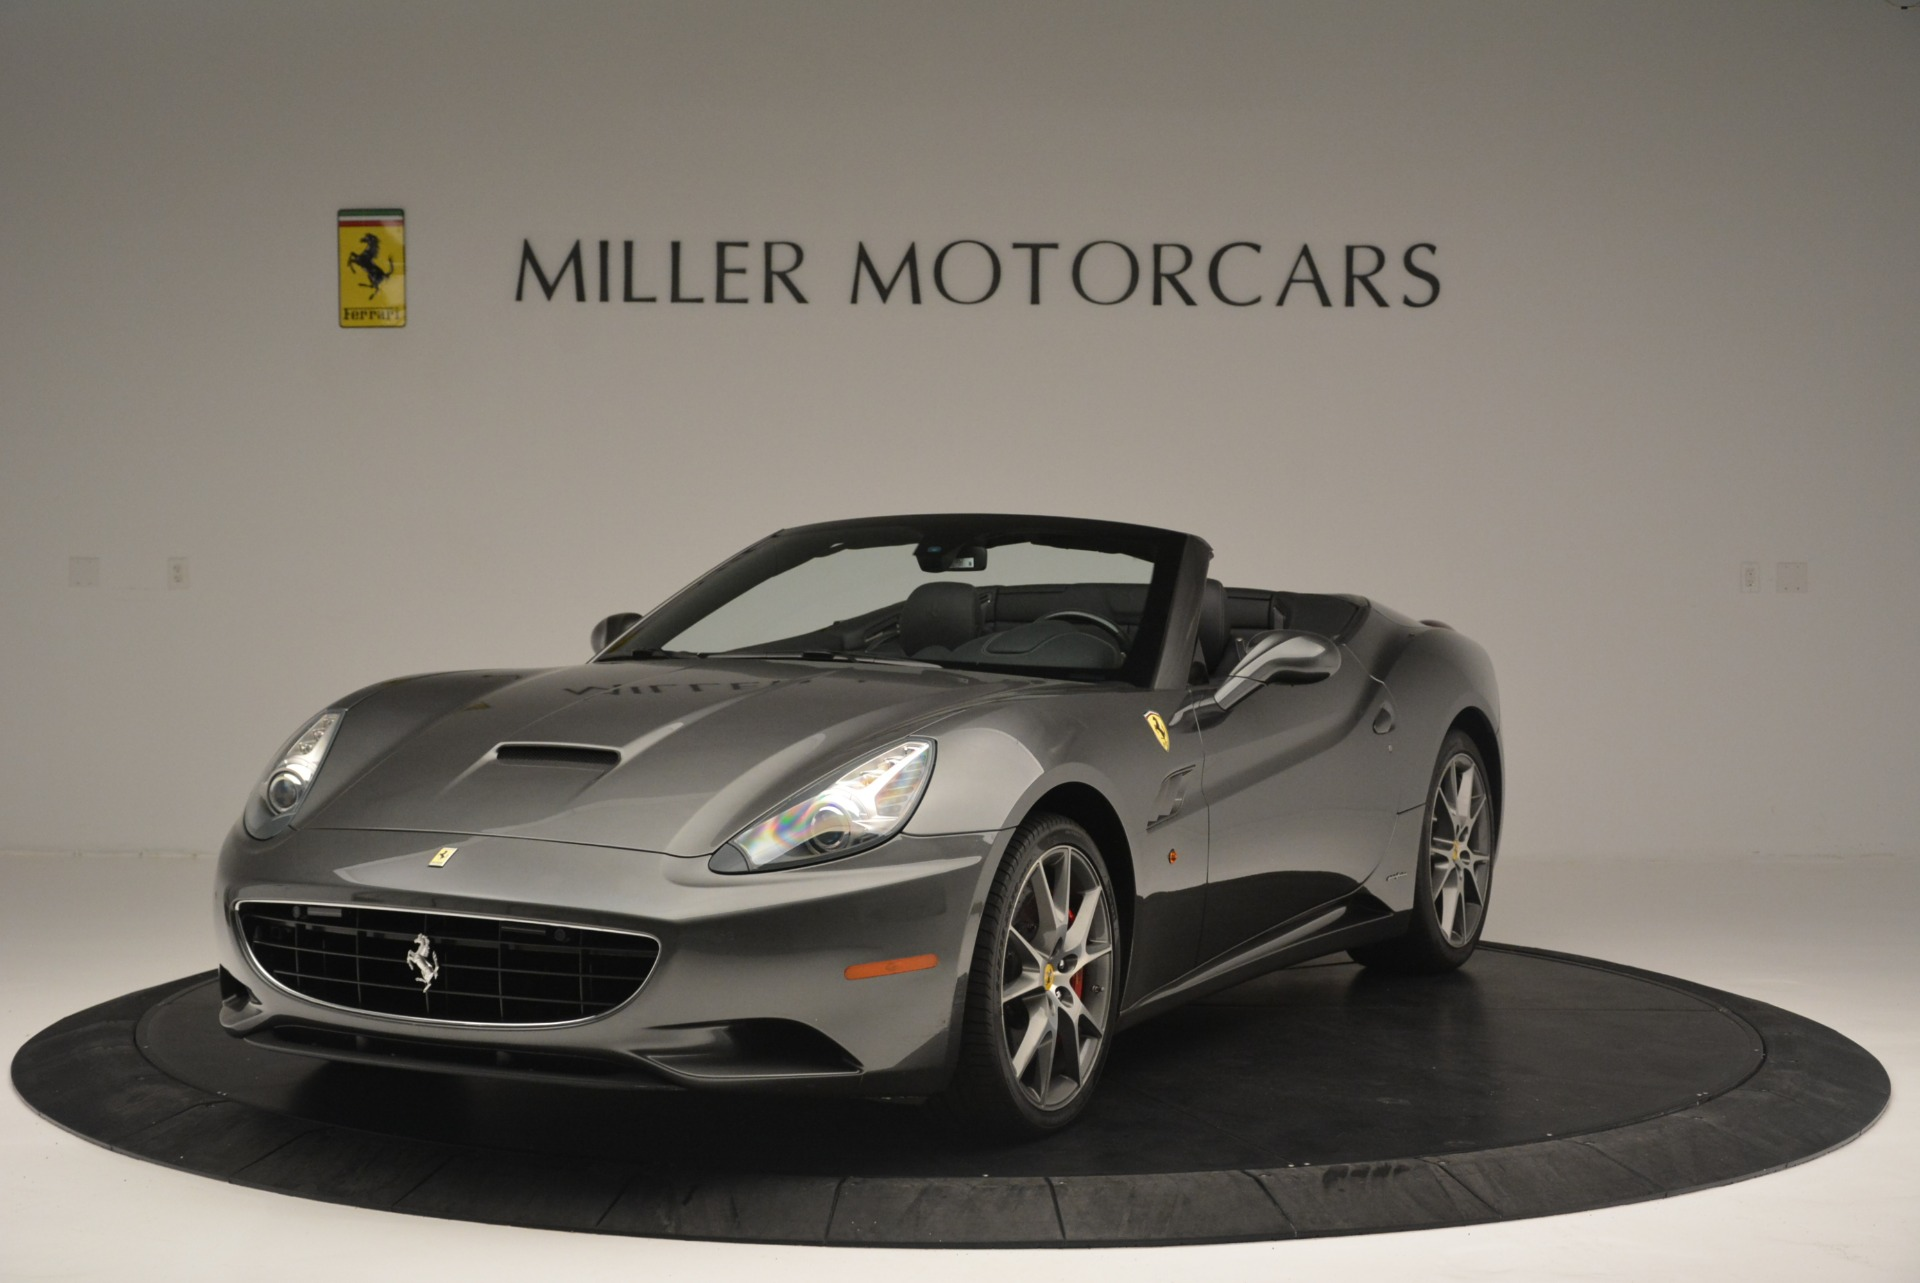 Used 2010 Ferrari California for sale Sold at Alfa Romeo of Westport in Westport CT 06880 1